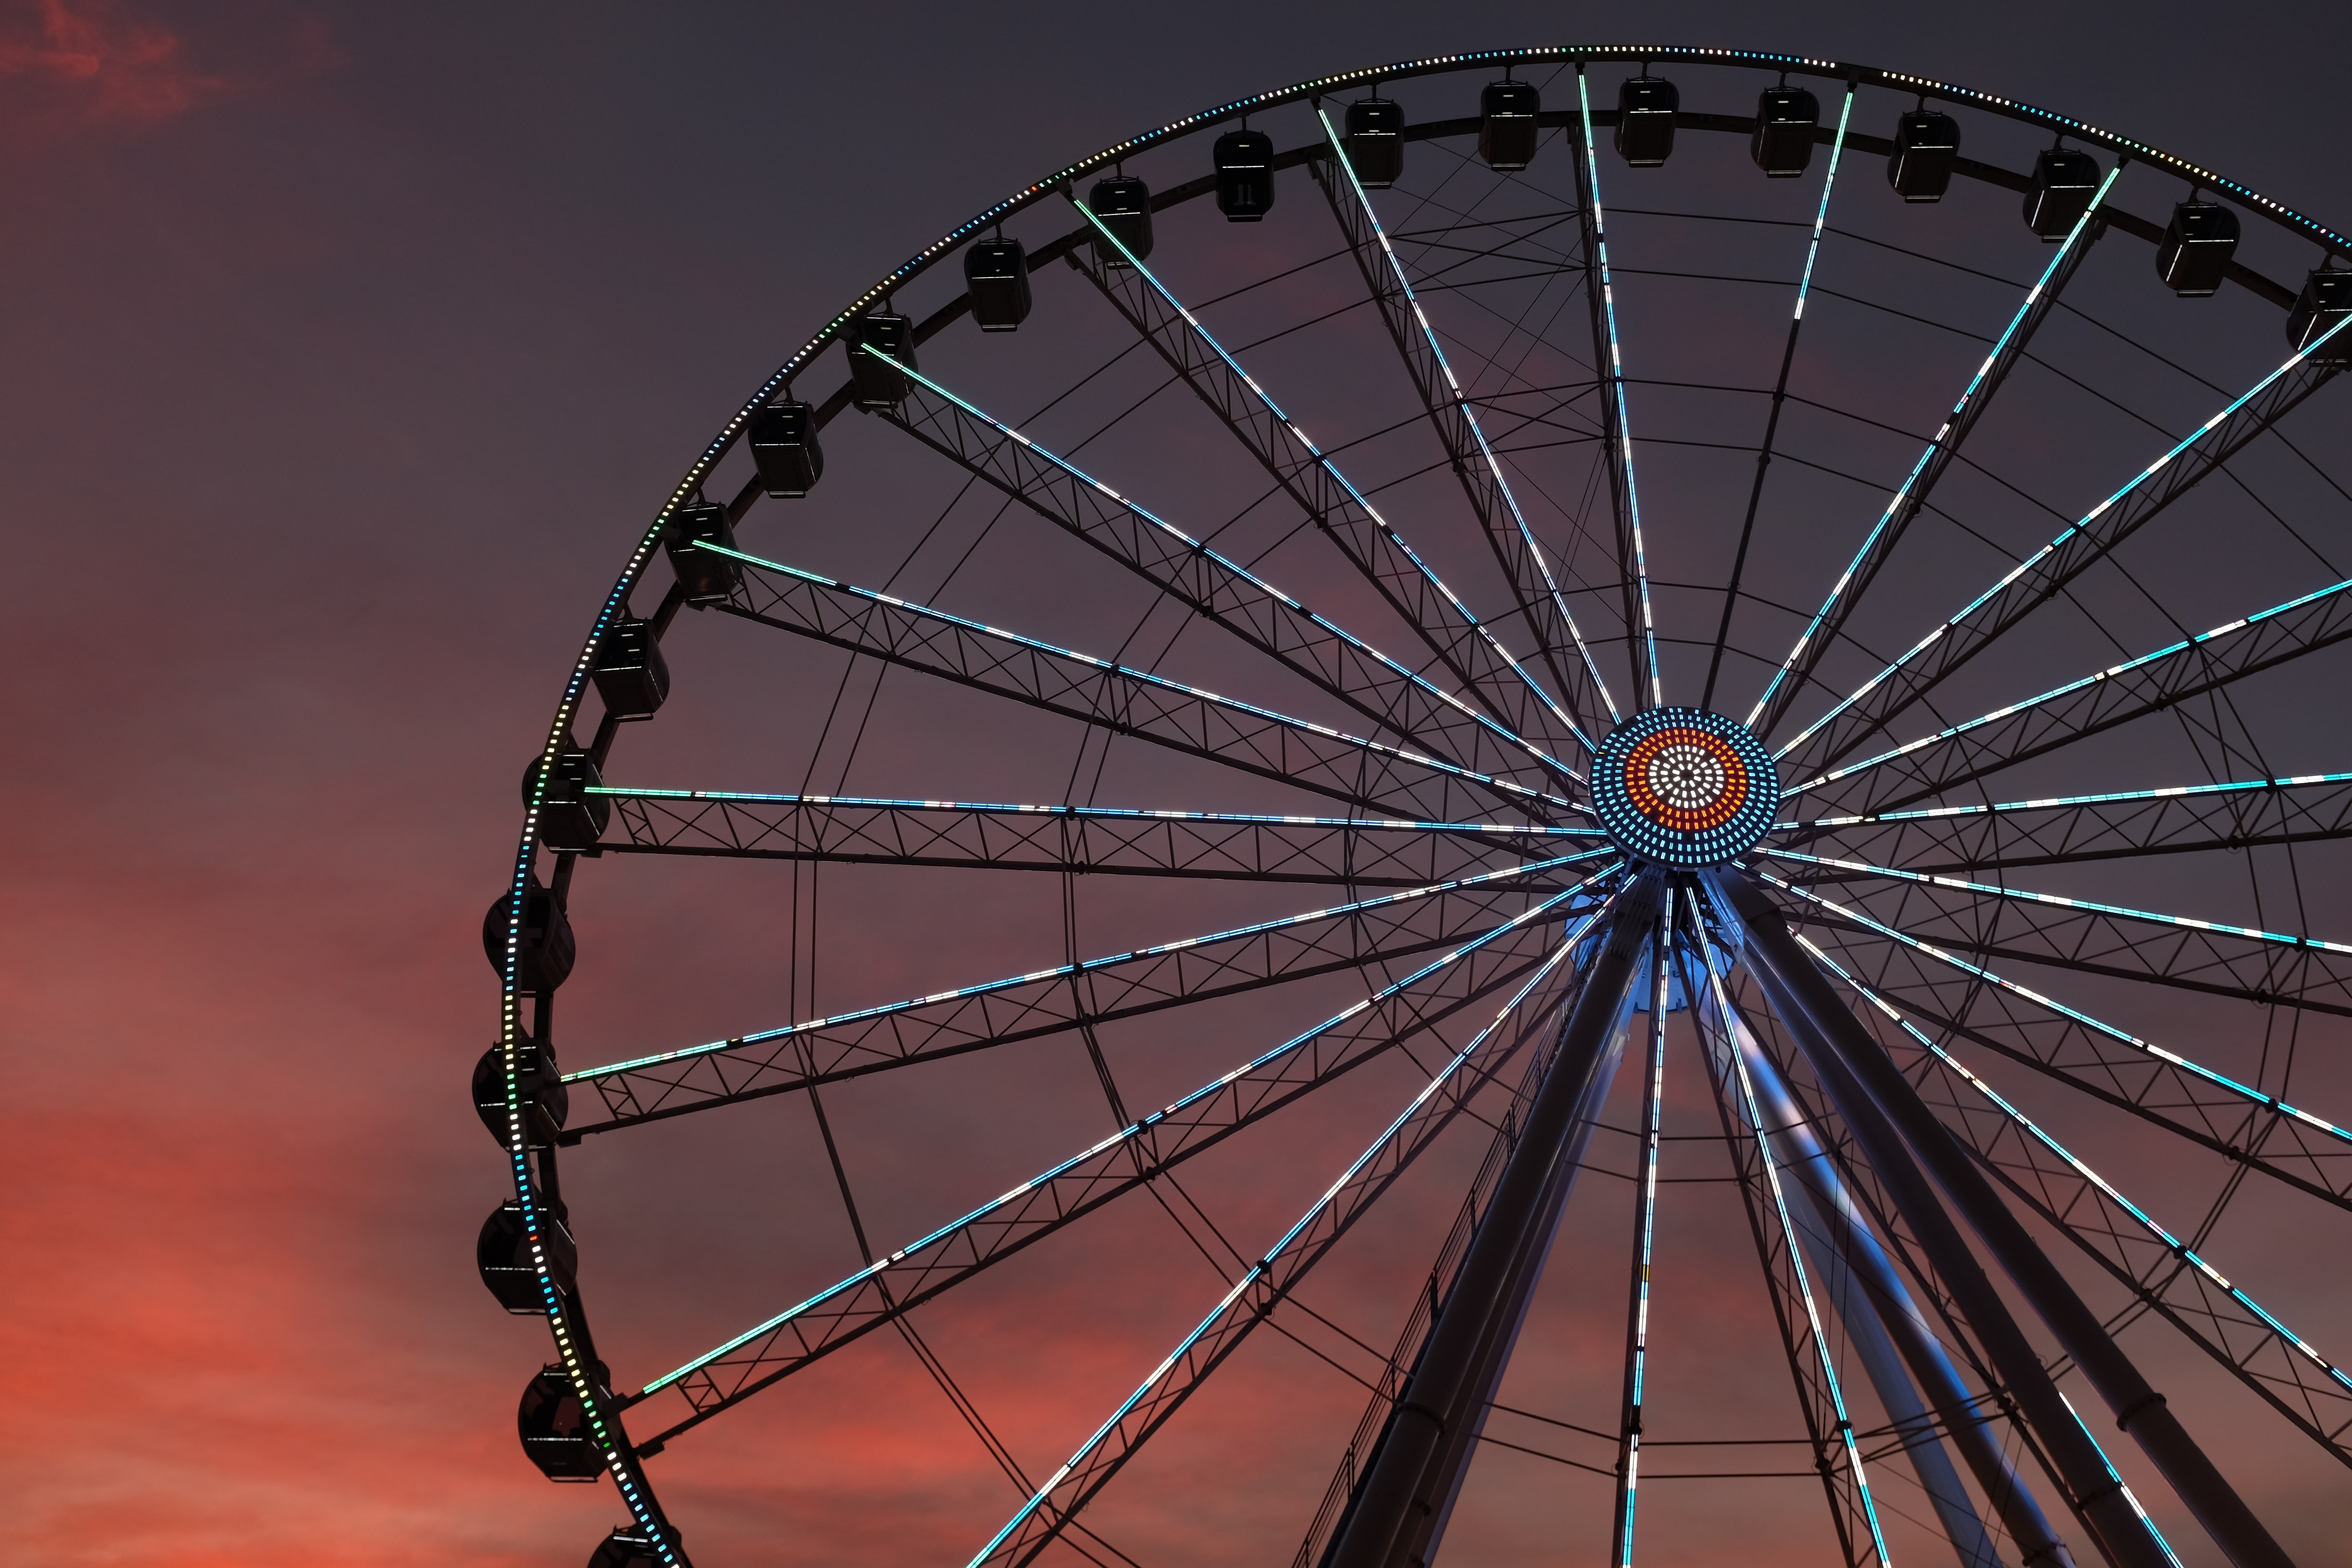 architectural photography of Ferris wheel